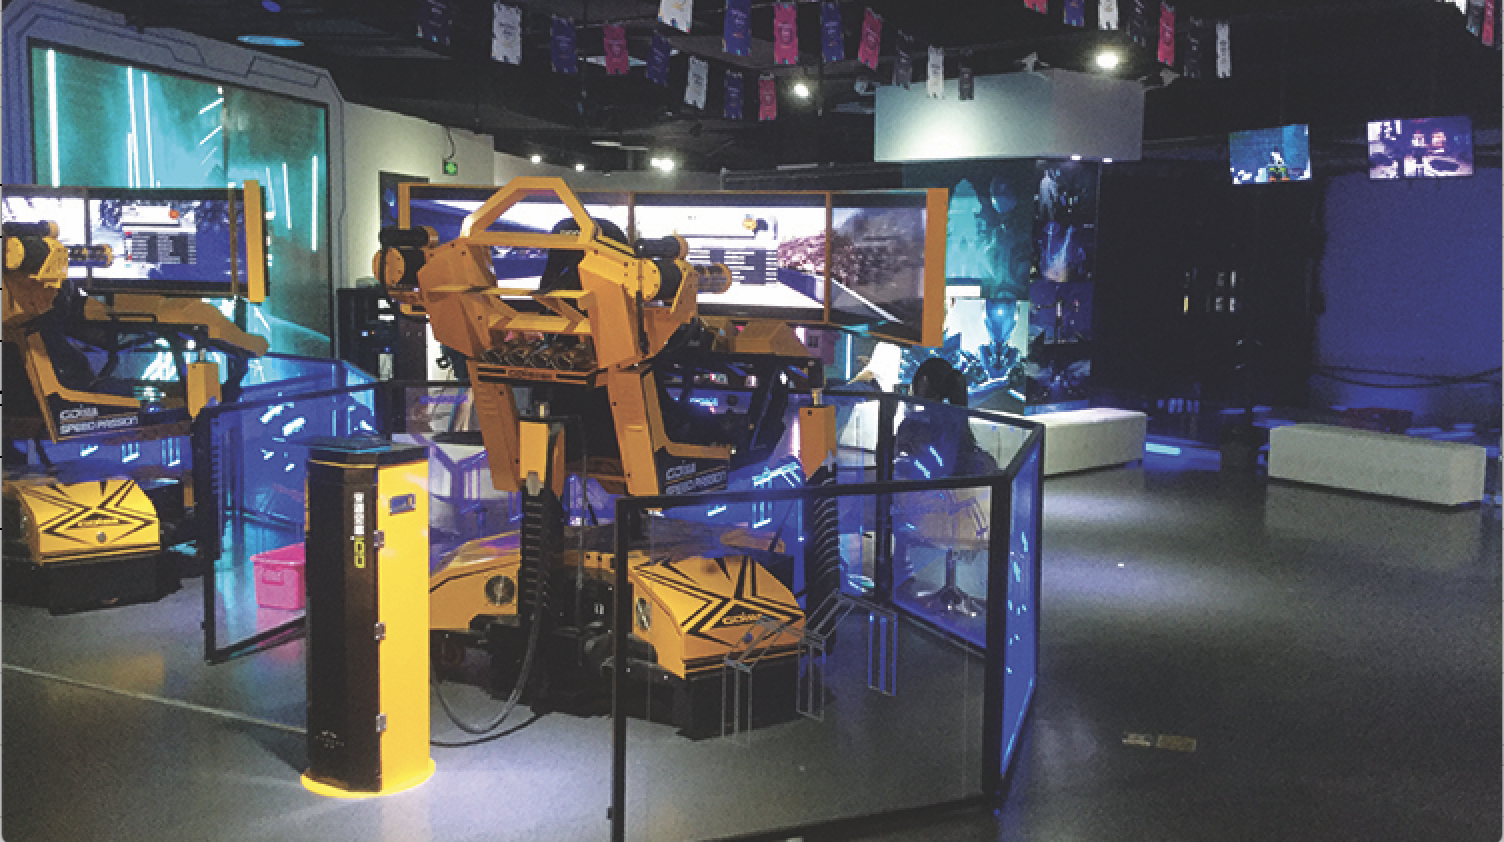 The best virtual reality arcades and game rooms in Shanghai